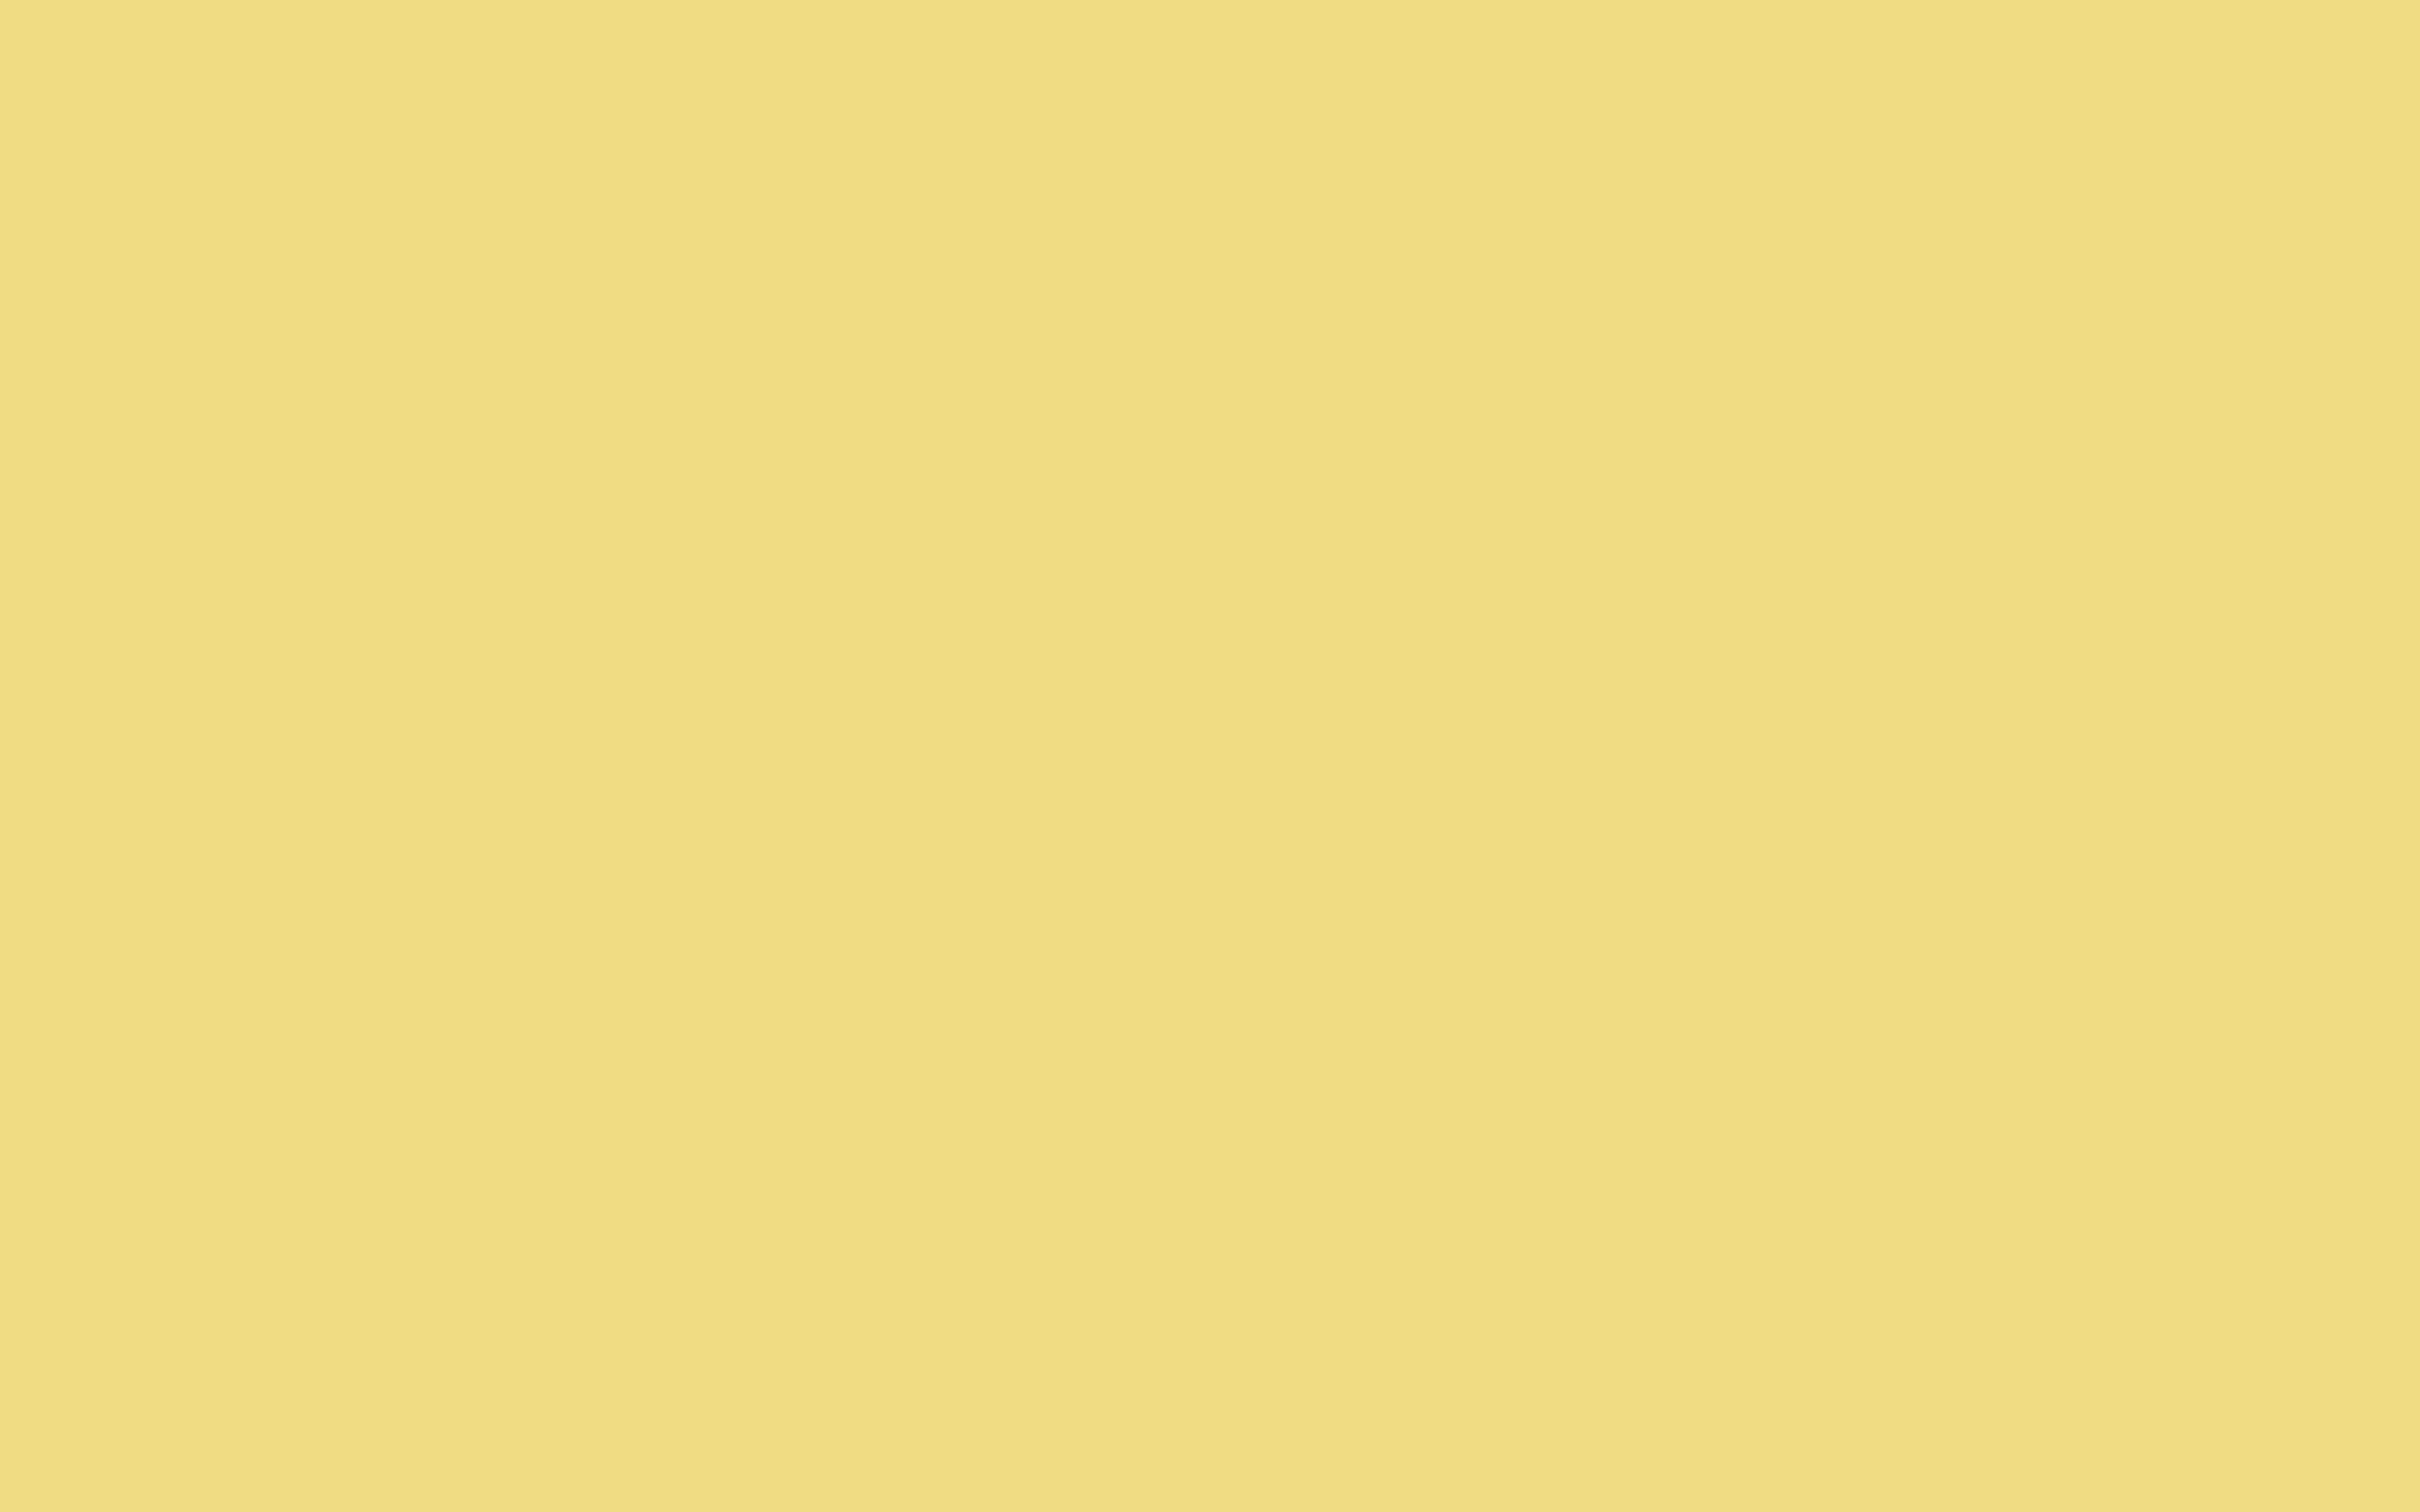 2560x1600 Buff Solid Color Background